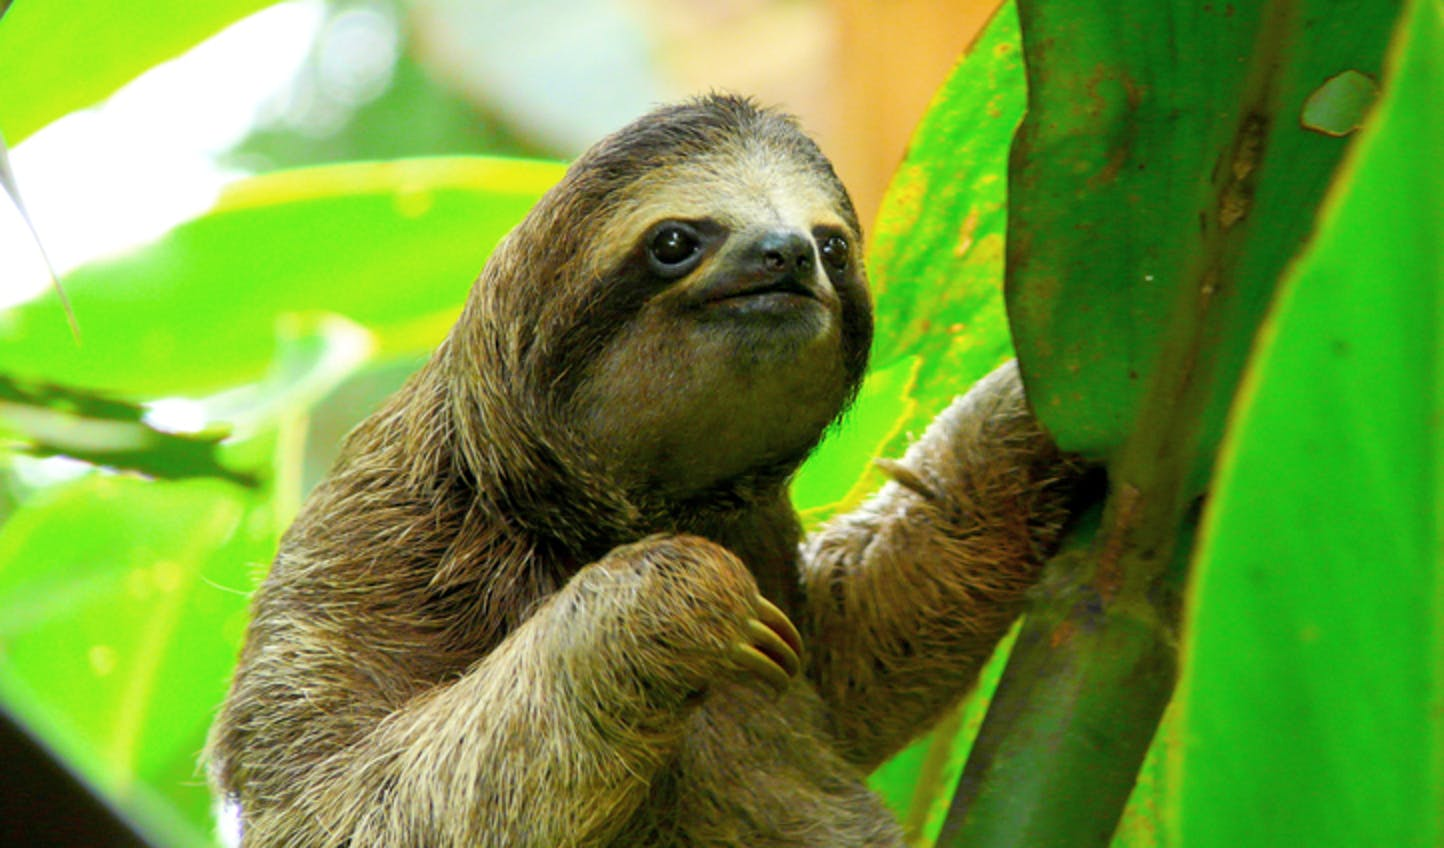 A sloth in Colombia's jungle